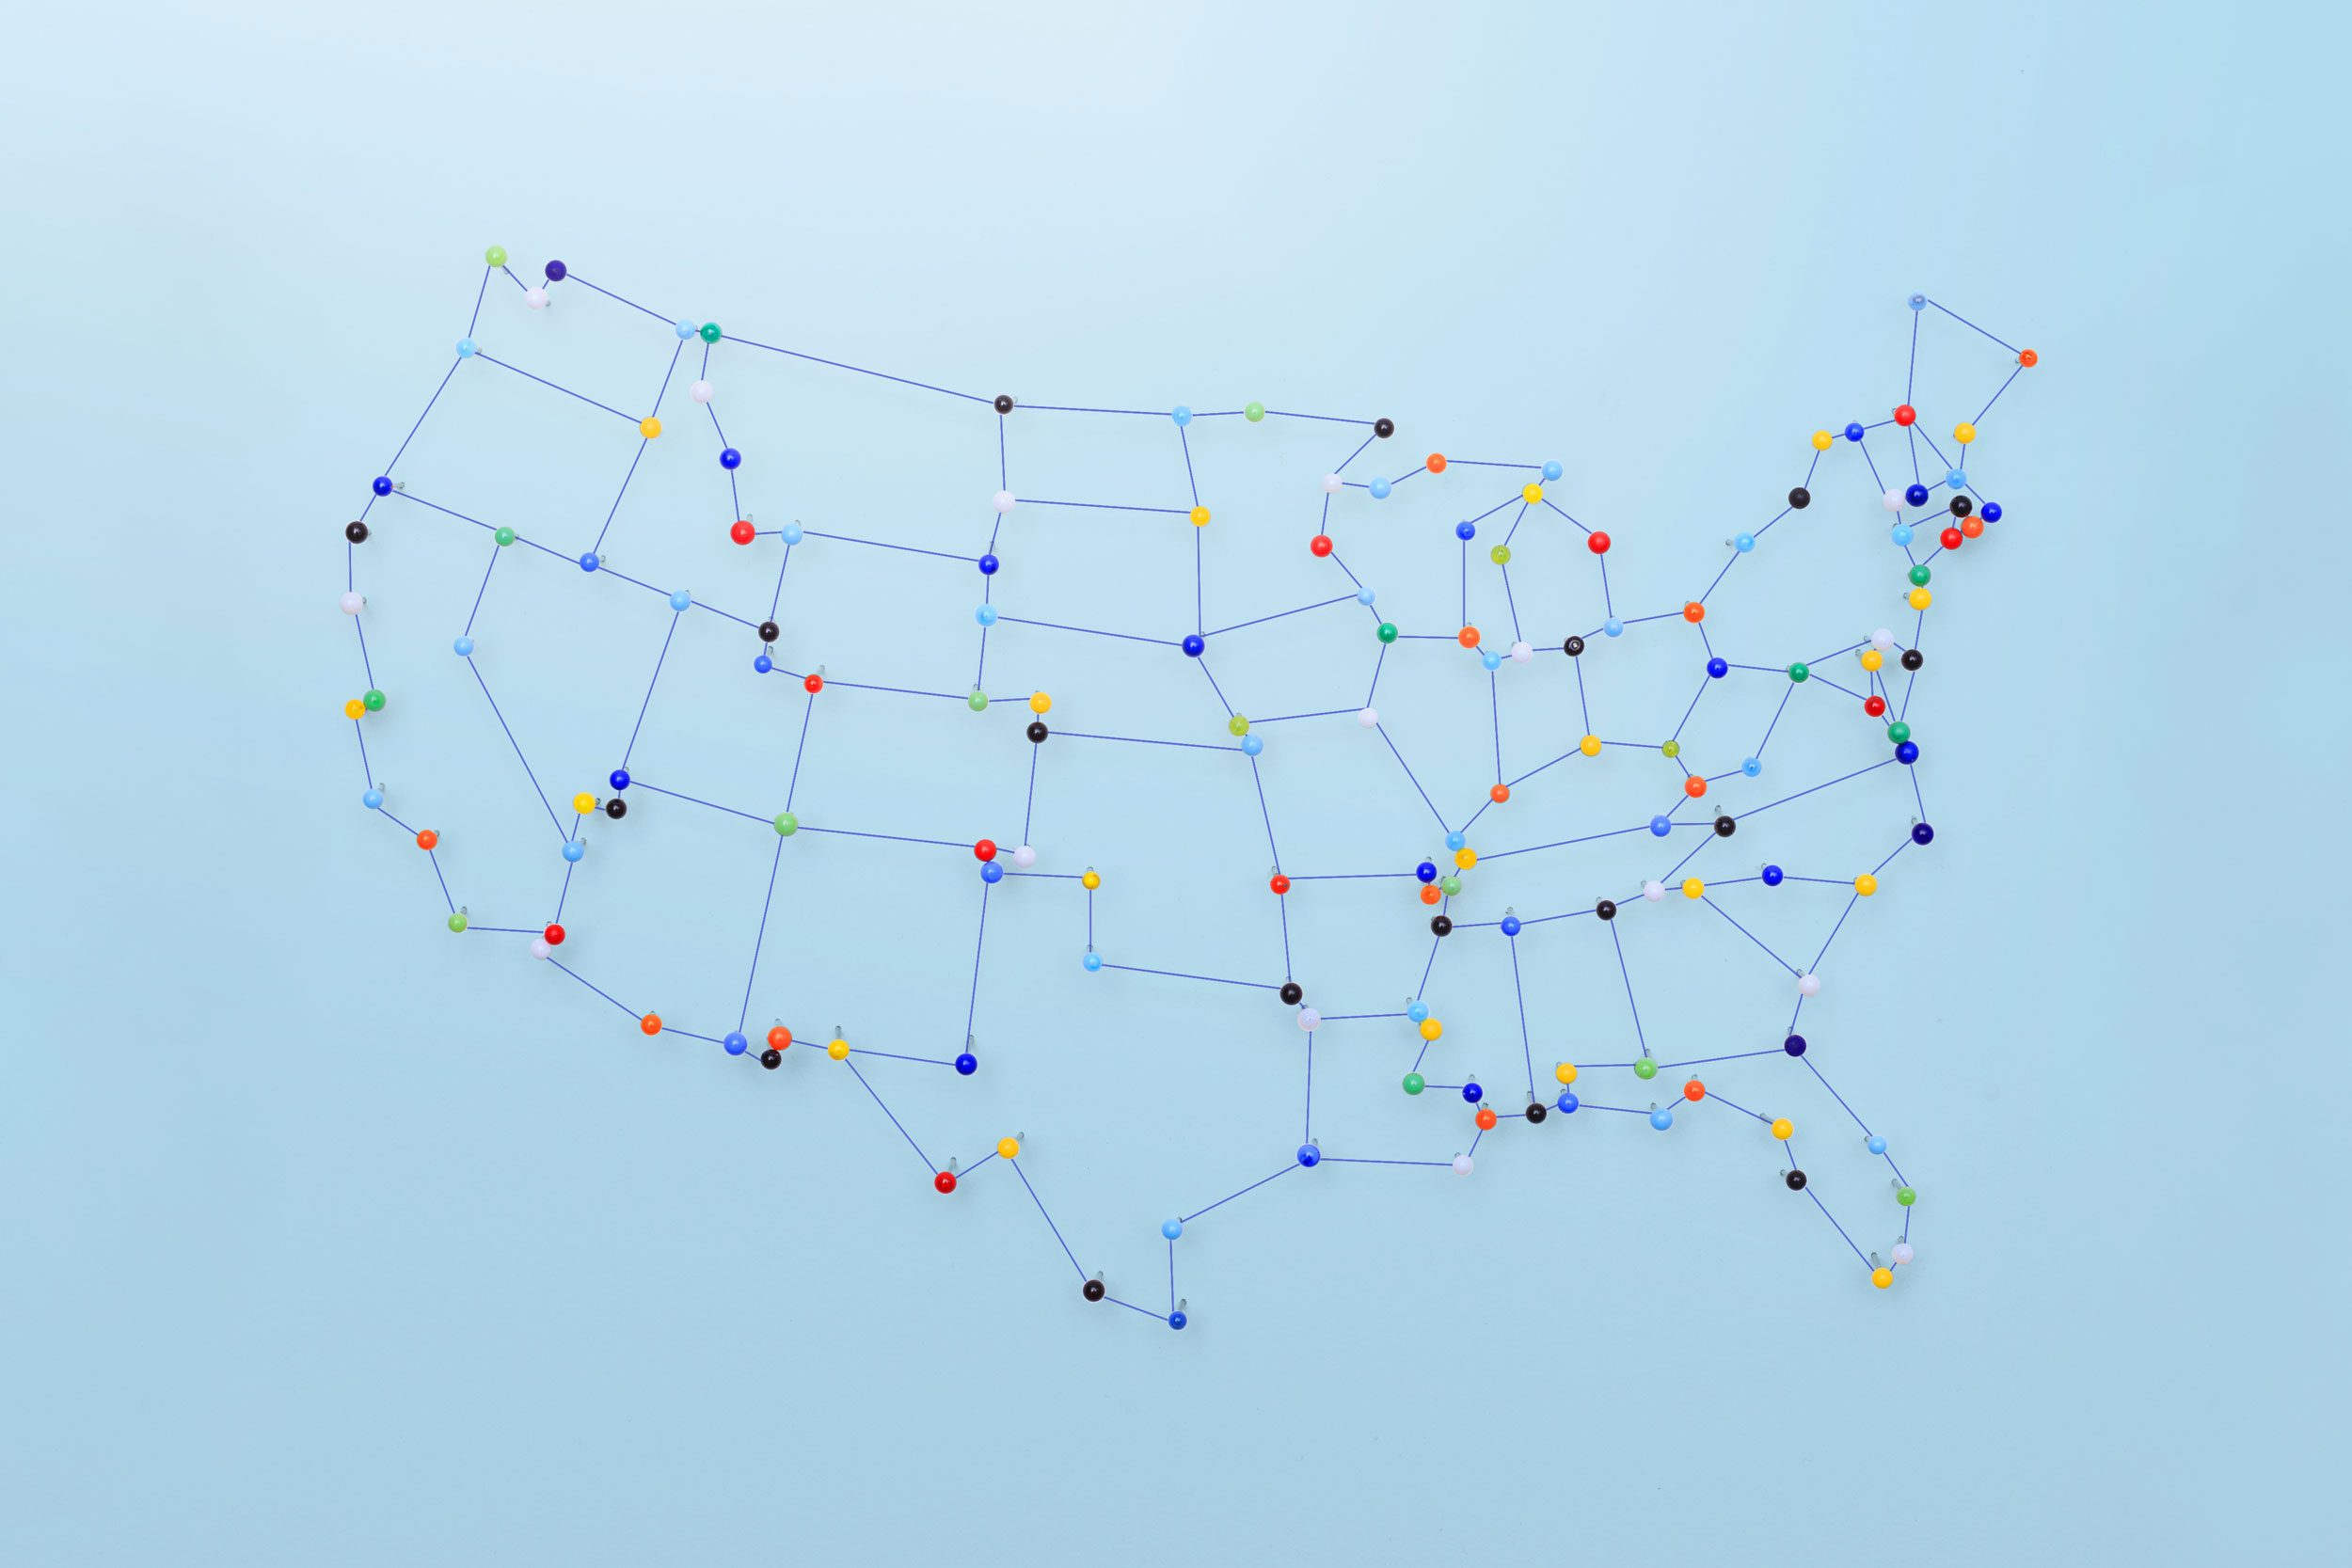 united states map made with pins and string on blue background